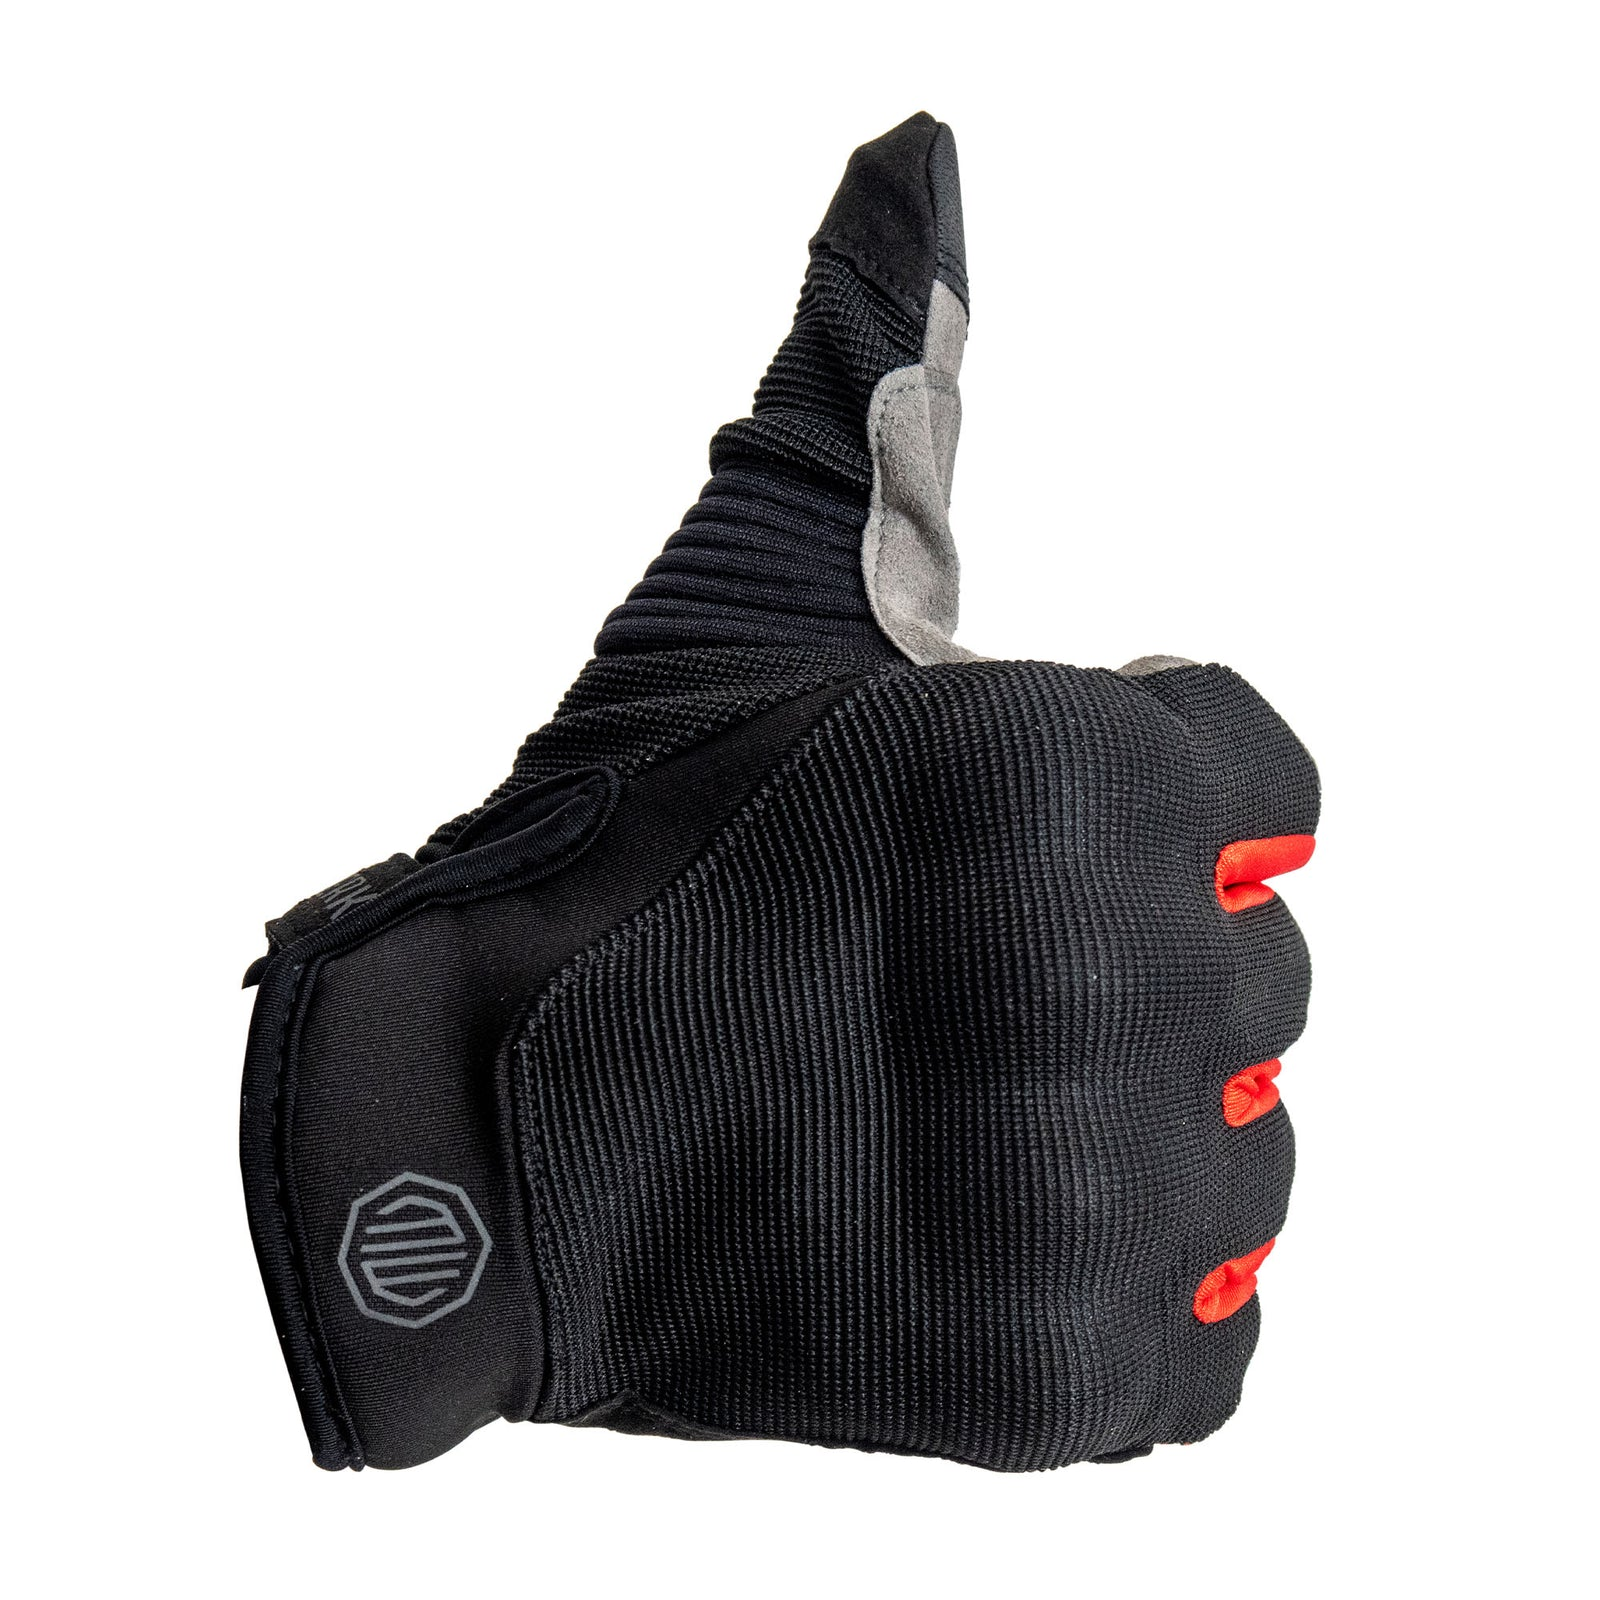 Mw Urban Gloves Black/Red